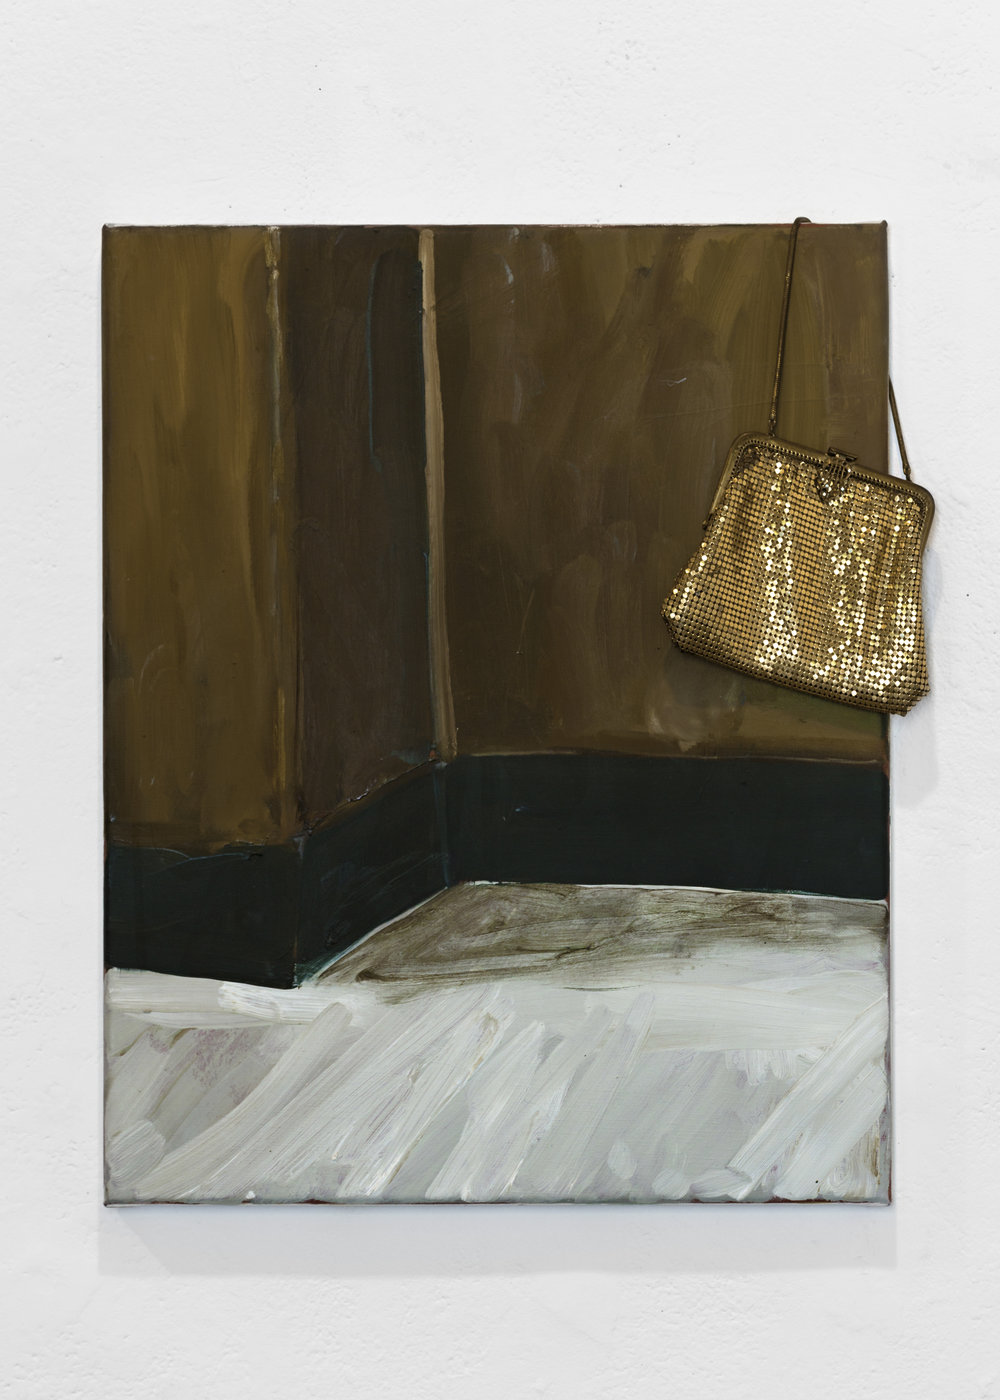 INTERIOR PLACEMENTS  Interior Placement 1 (Film Set)  Oil on linen, glow mesh. 51cm x 41cm, 2015.